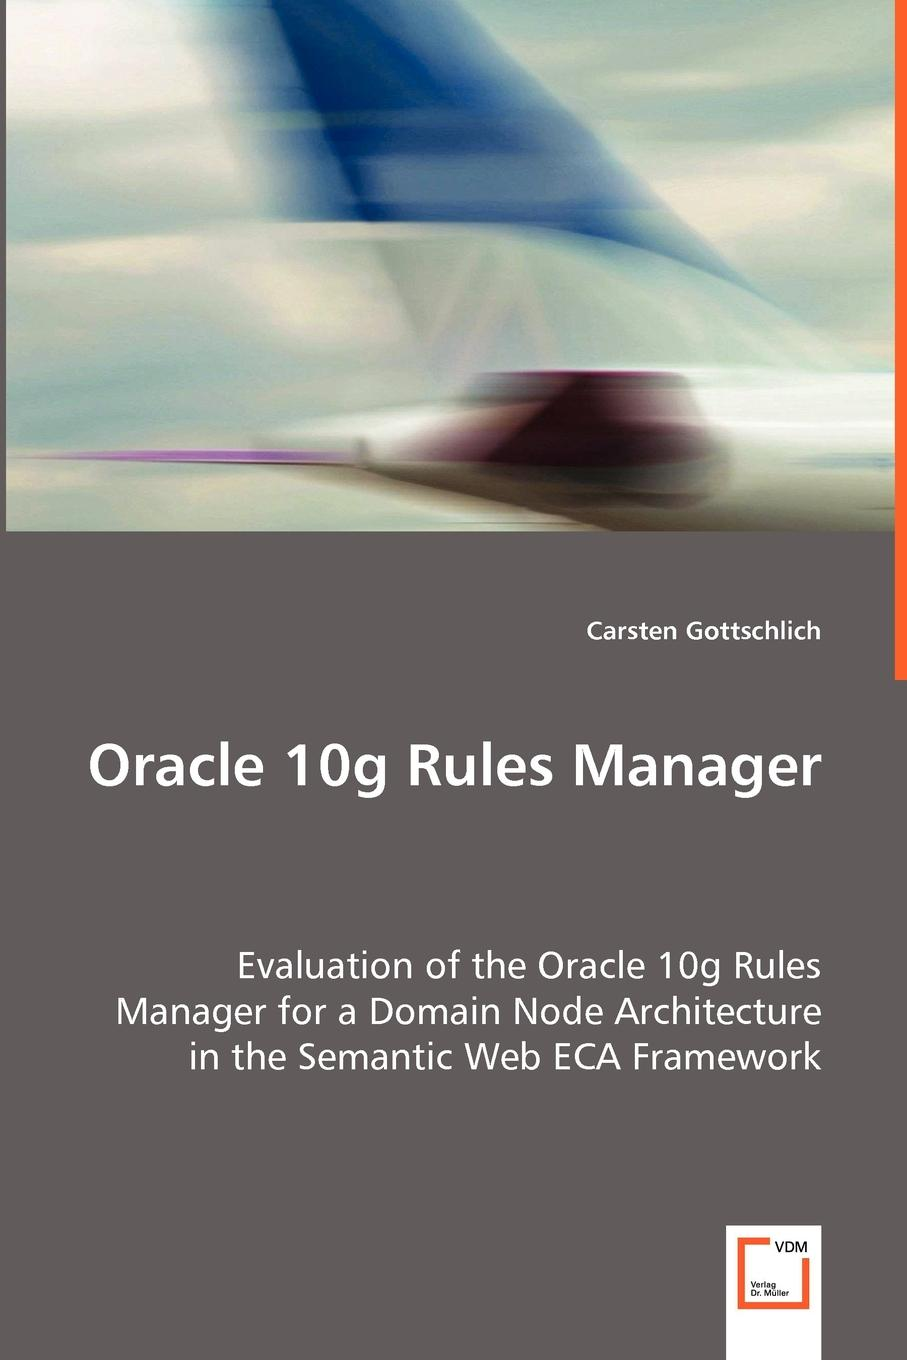 Carsten Gottschlich Oracle 10g Rules Manager - Evaluation of the Oracle 10g Rules Manager for a Domain Node Architecture in the Semantic Web ECA Framework